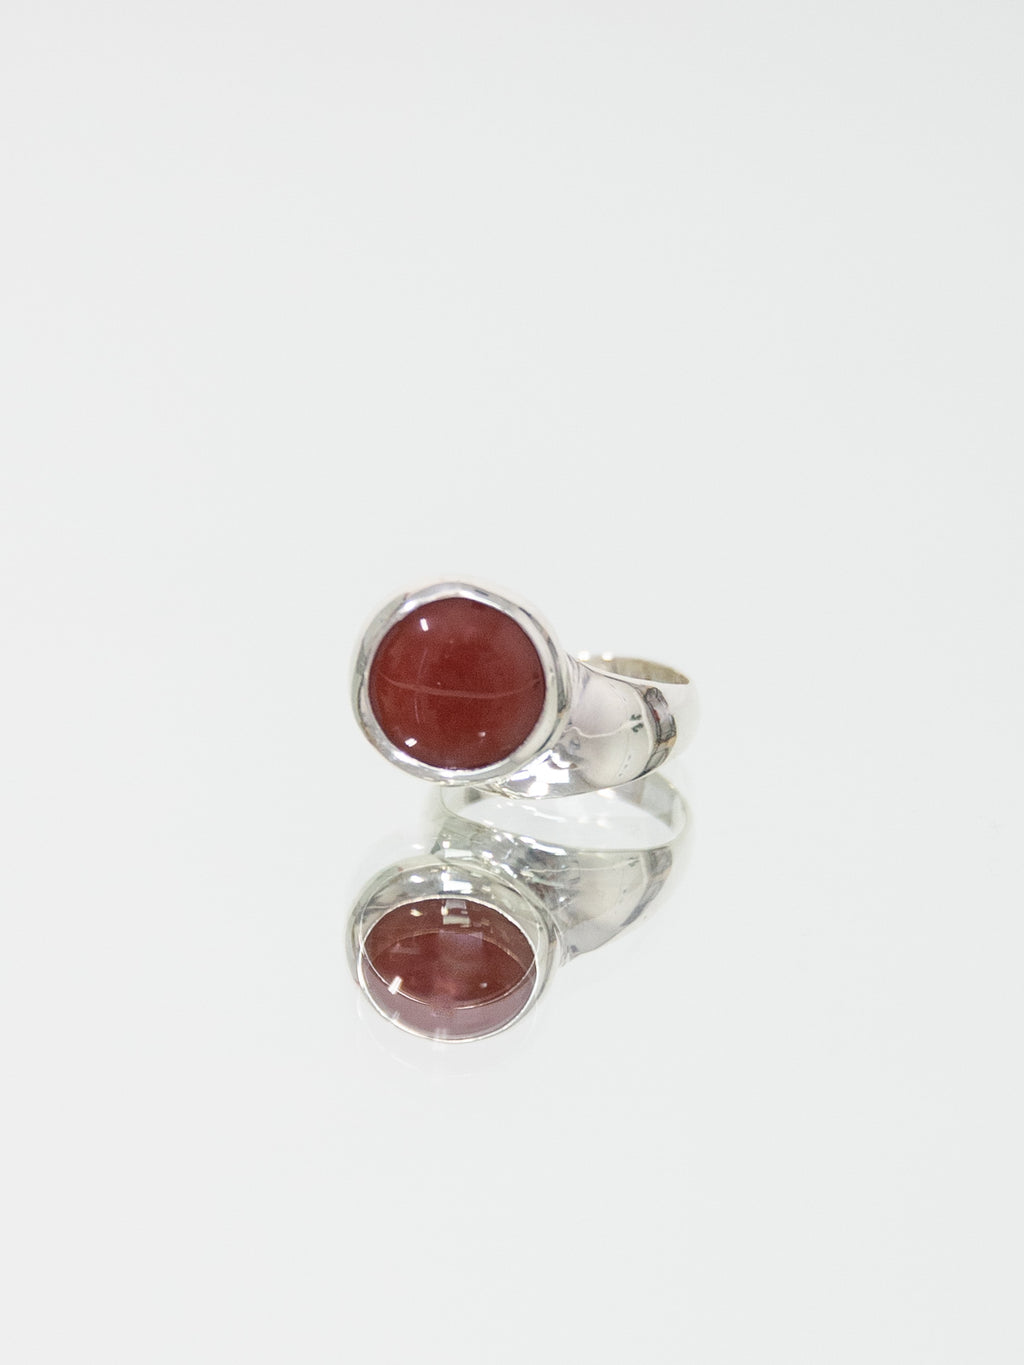 FARIS OFFSET Ring - Sterling Silver & Carnelian